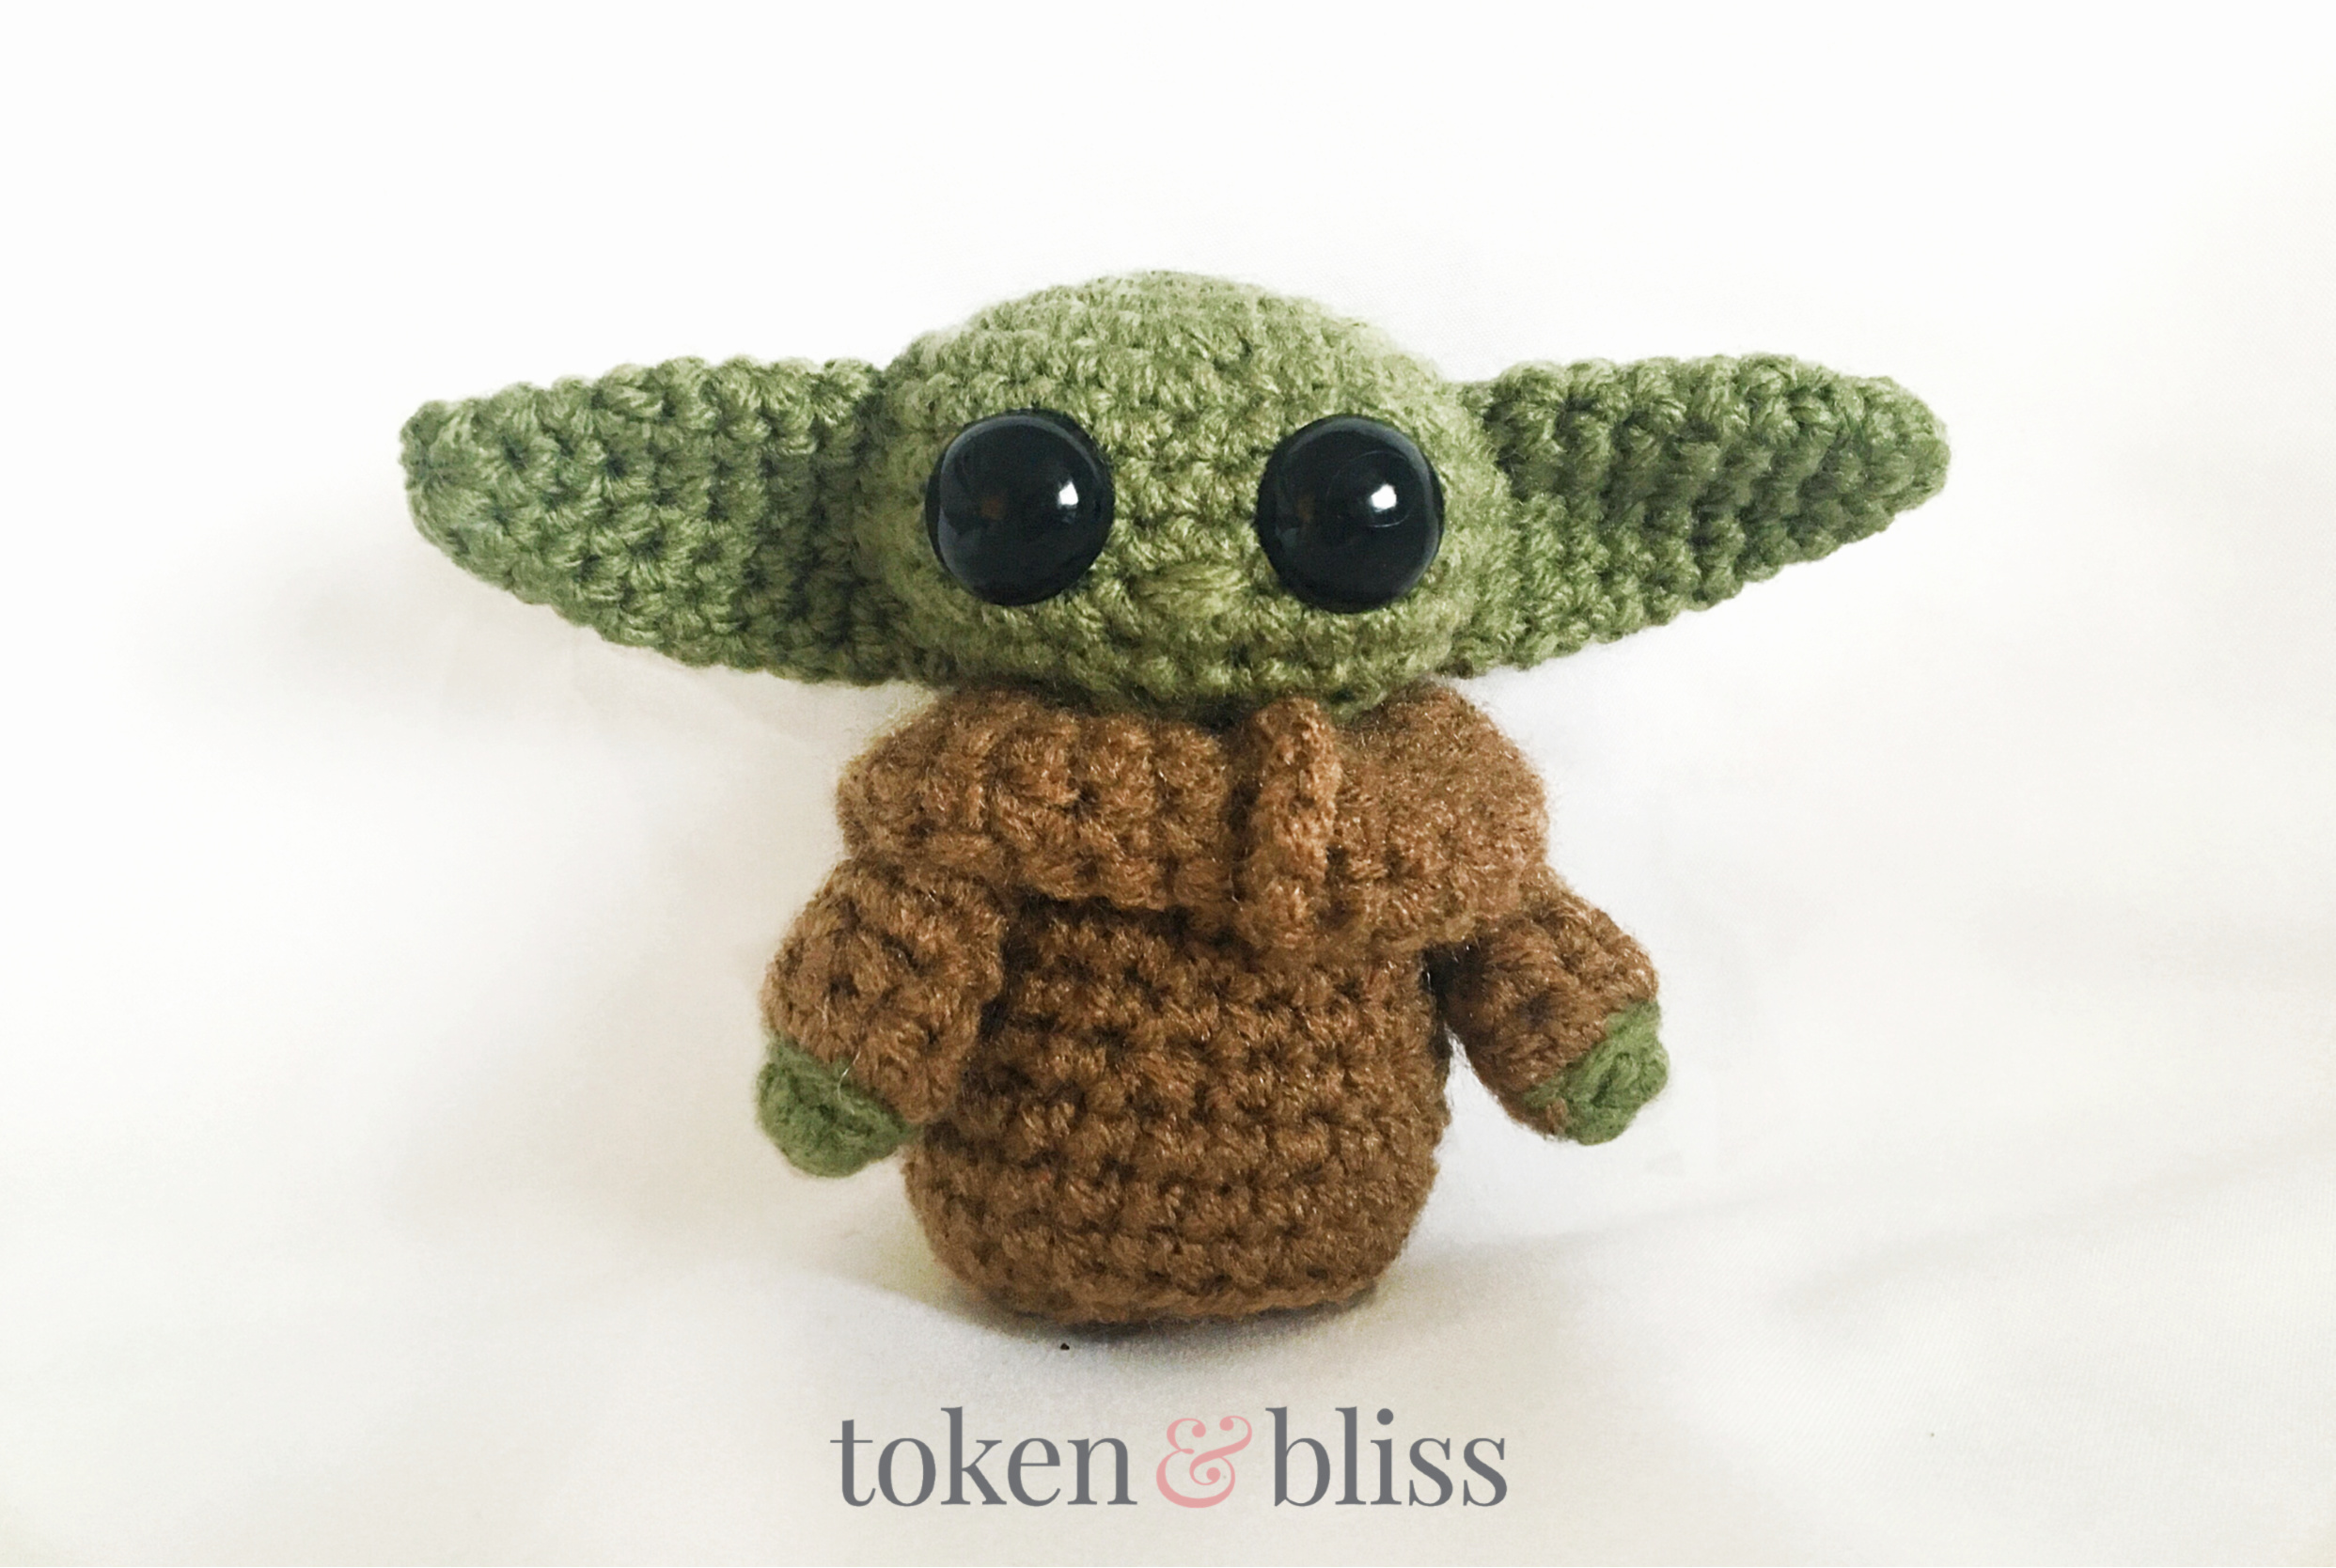 Here's A Crocheted Child Baby Amigurumi That You Can Make Yourself ...   1668x2485